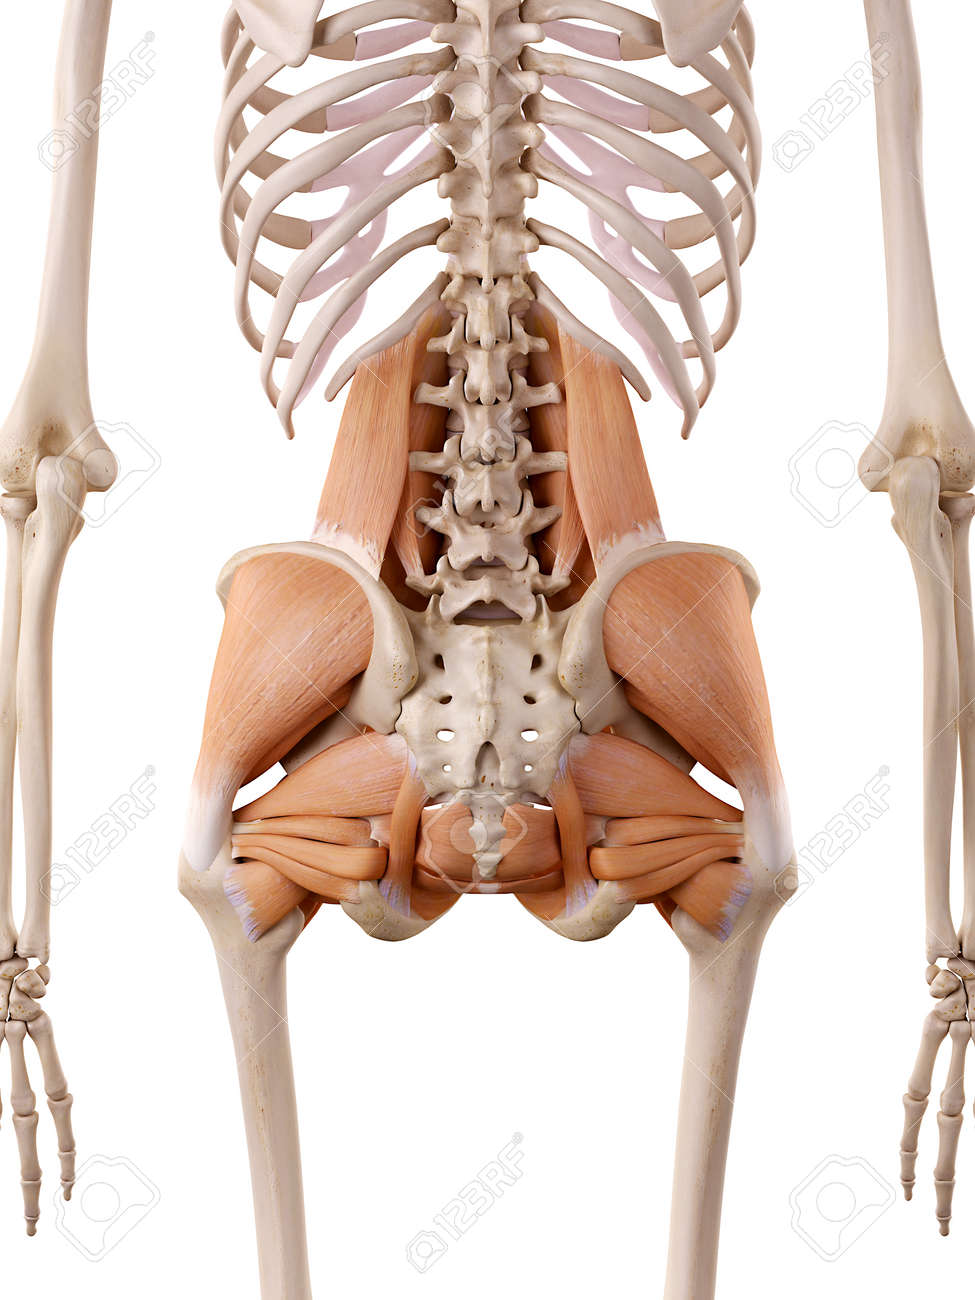 Medically Accurate Anatomy Illustration Hip Muscles Stock Photo